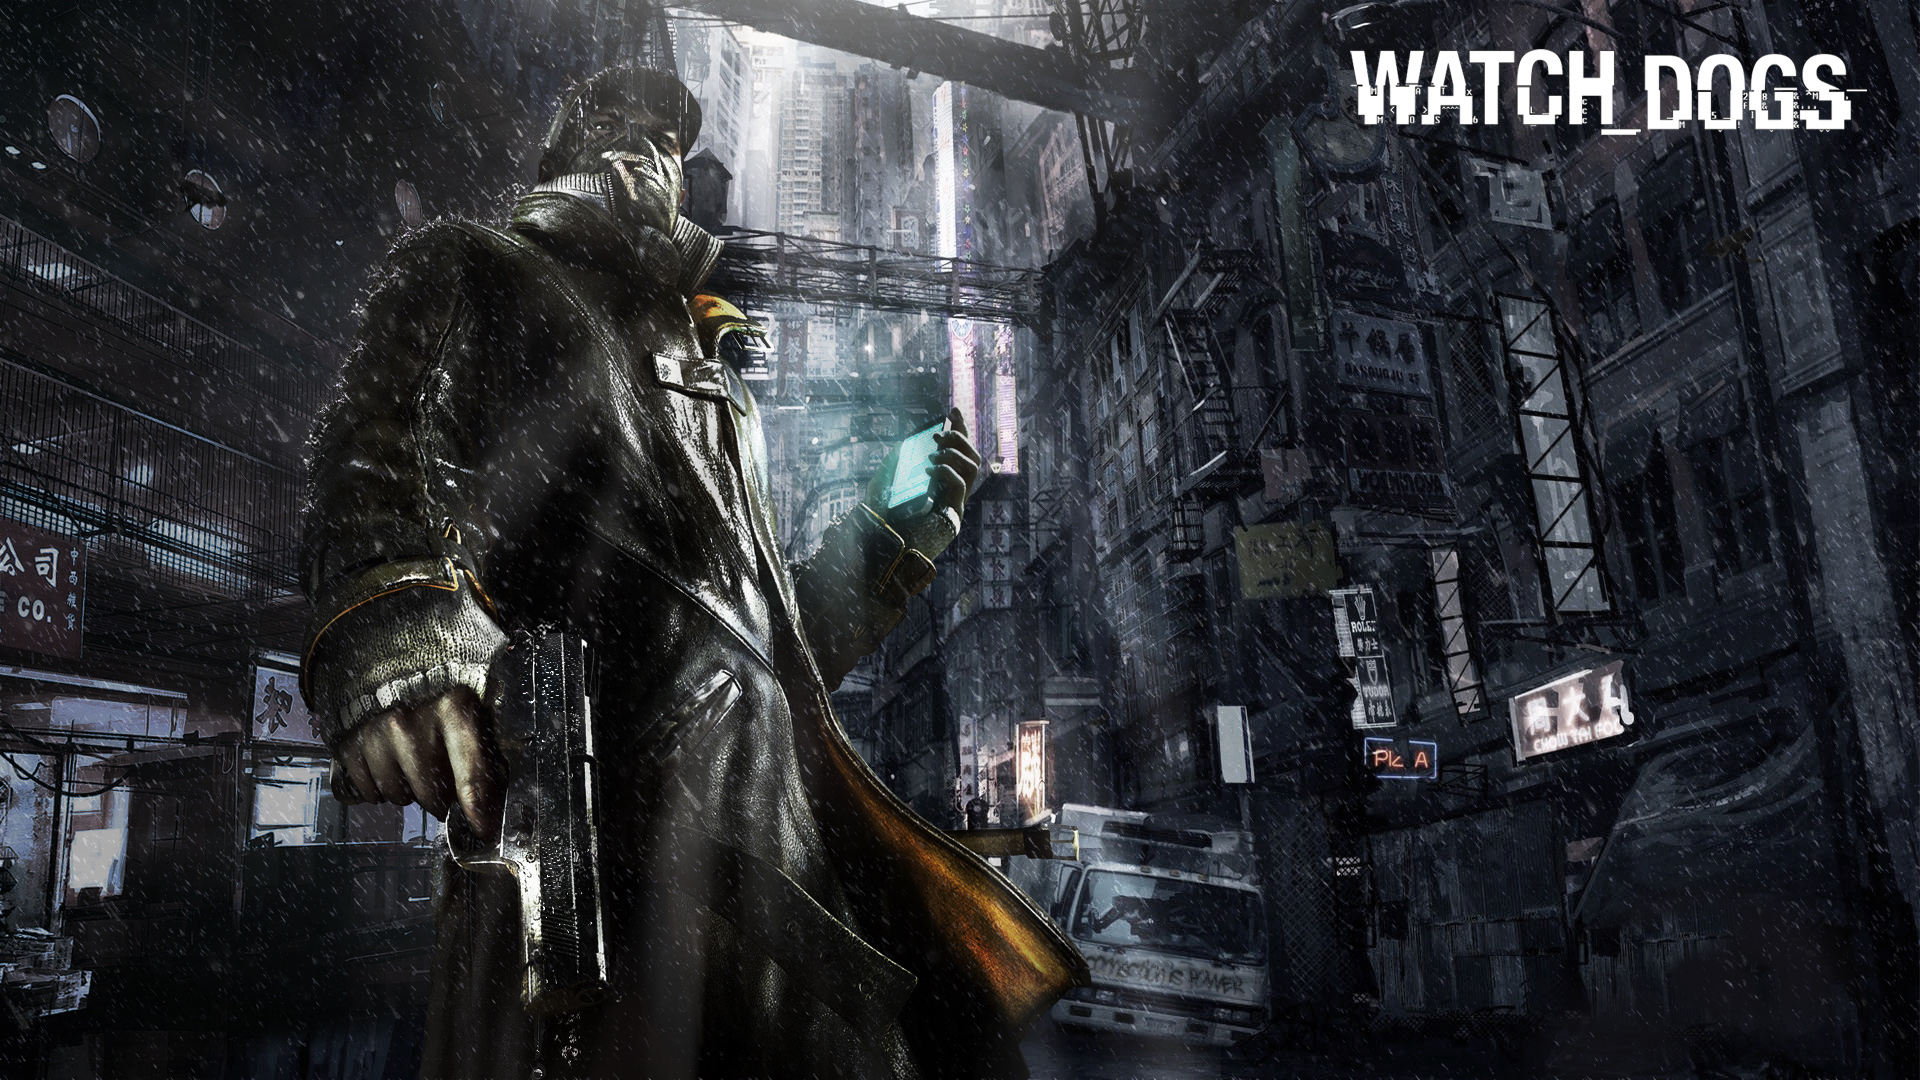 Photo of explains some of the Mission and the graphic of Watch_Dogs